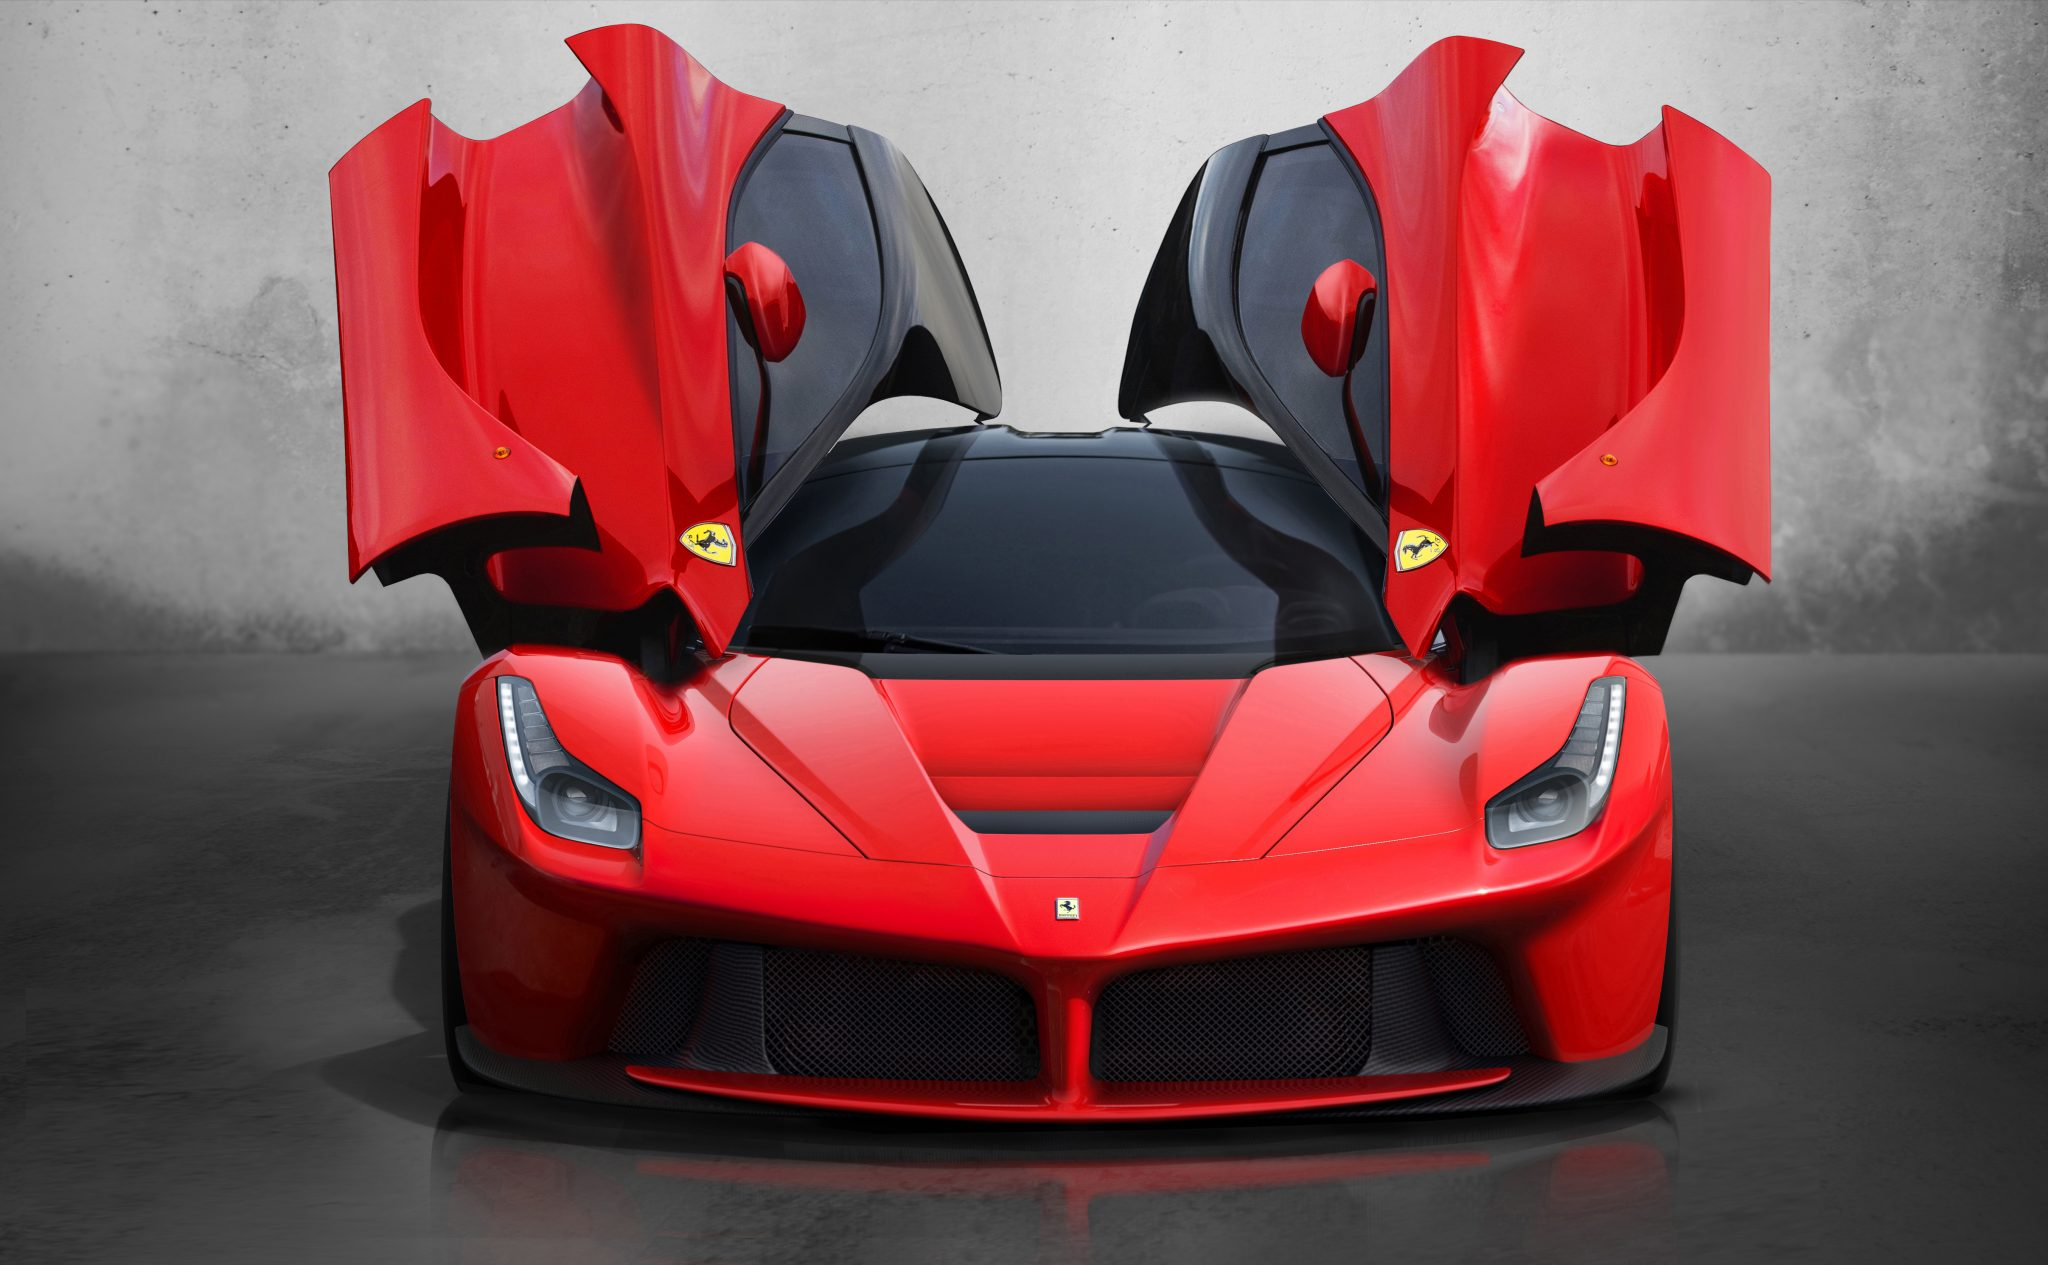 the-ferrari-corporation-rolled-out-its-first-car-in-1947-the-laferrari-one-of-the-company-s-latest-models-is-a-limited-edition-hybrid-sports-car